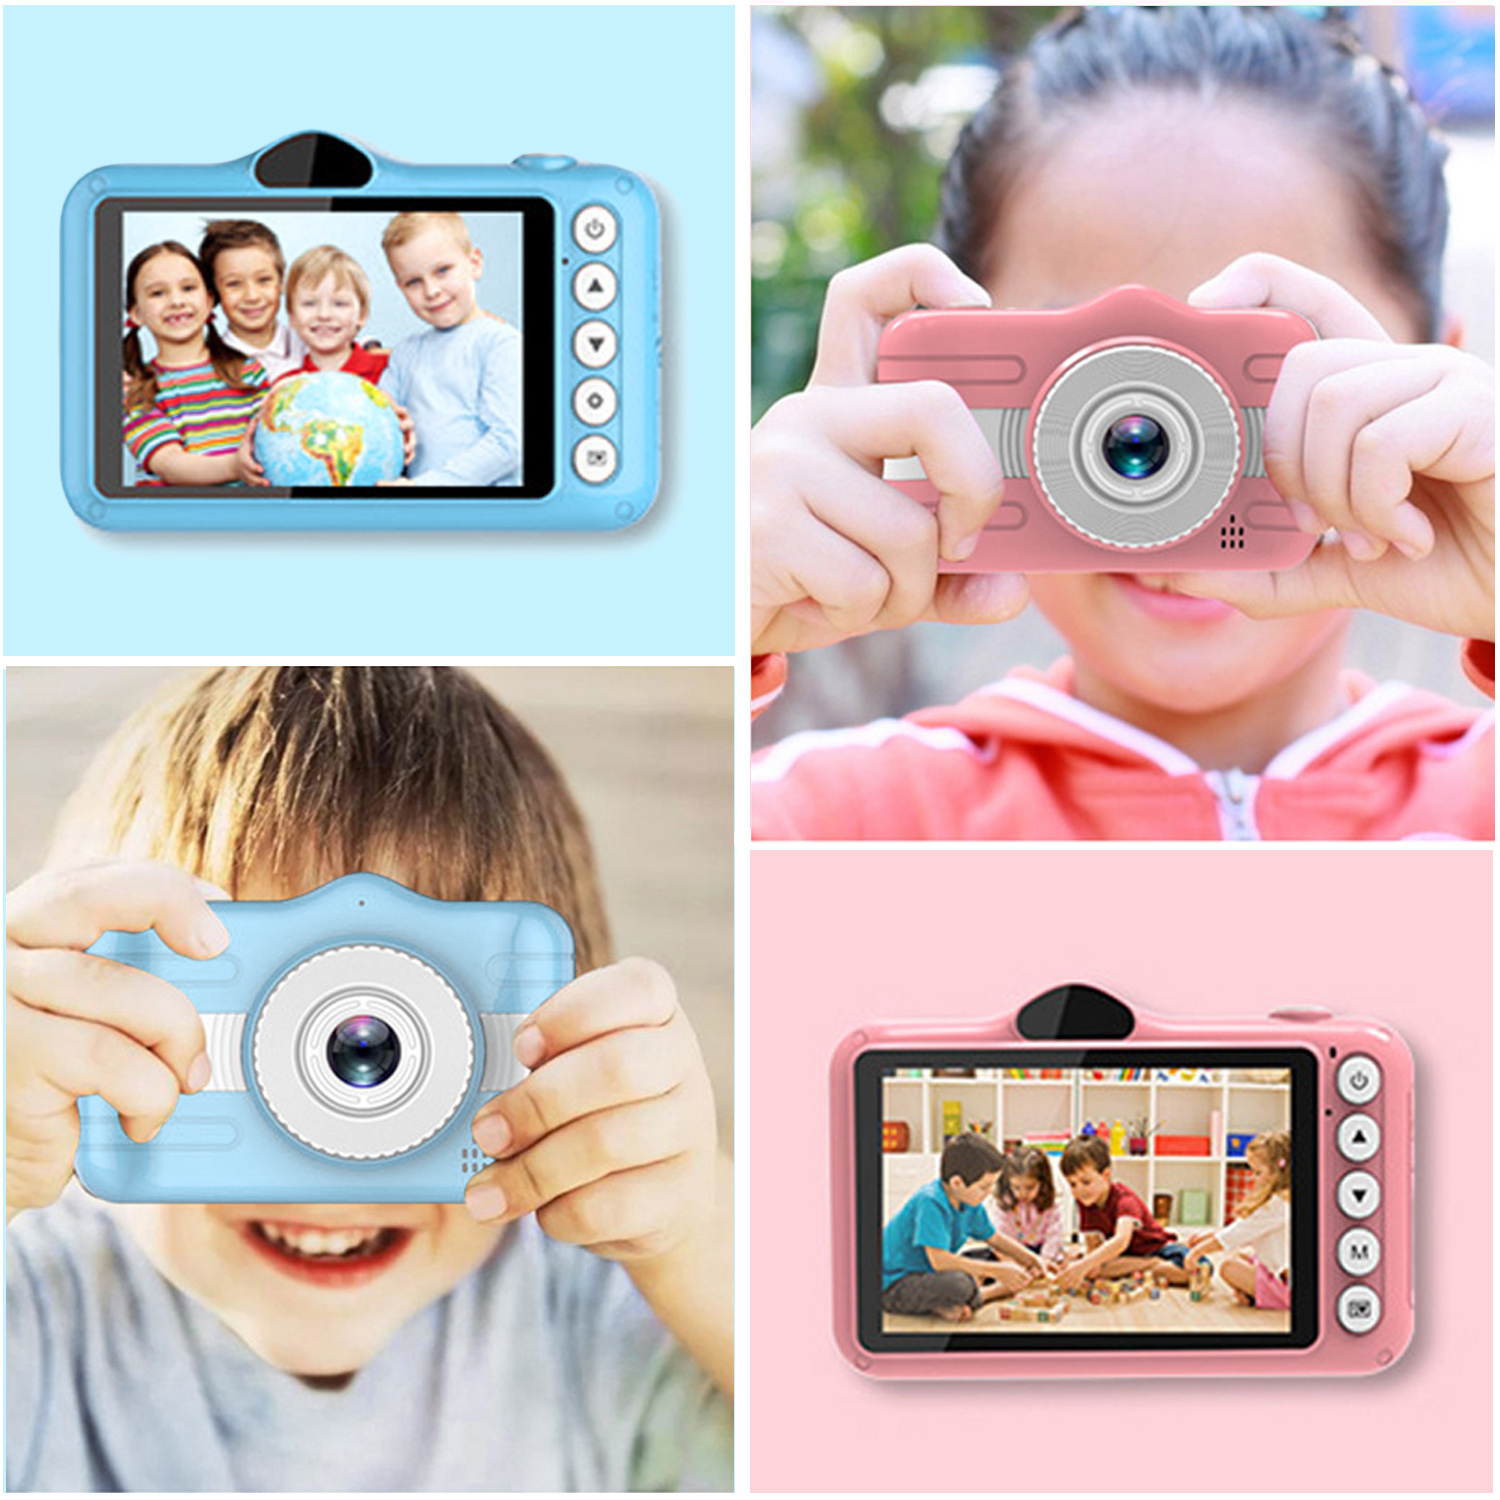 Kids Mini 1080P 800W Digital Camera 3.5 Inch IPS Screen Rechargeable Video Camcorder Camera Electronic Photography Camera Toy